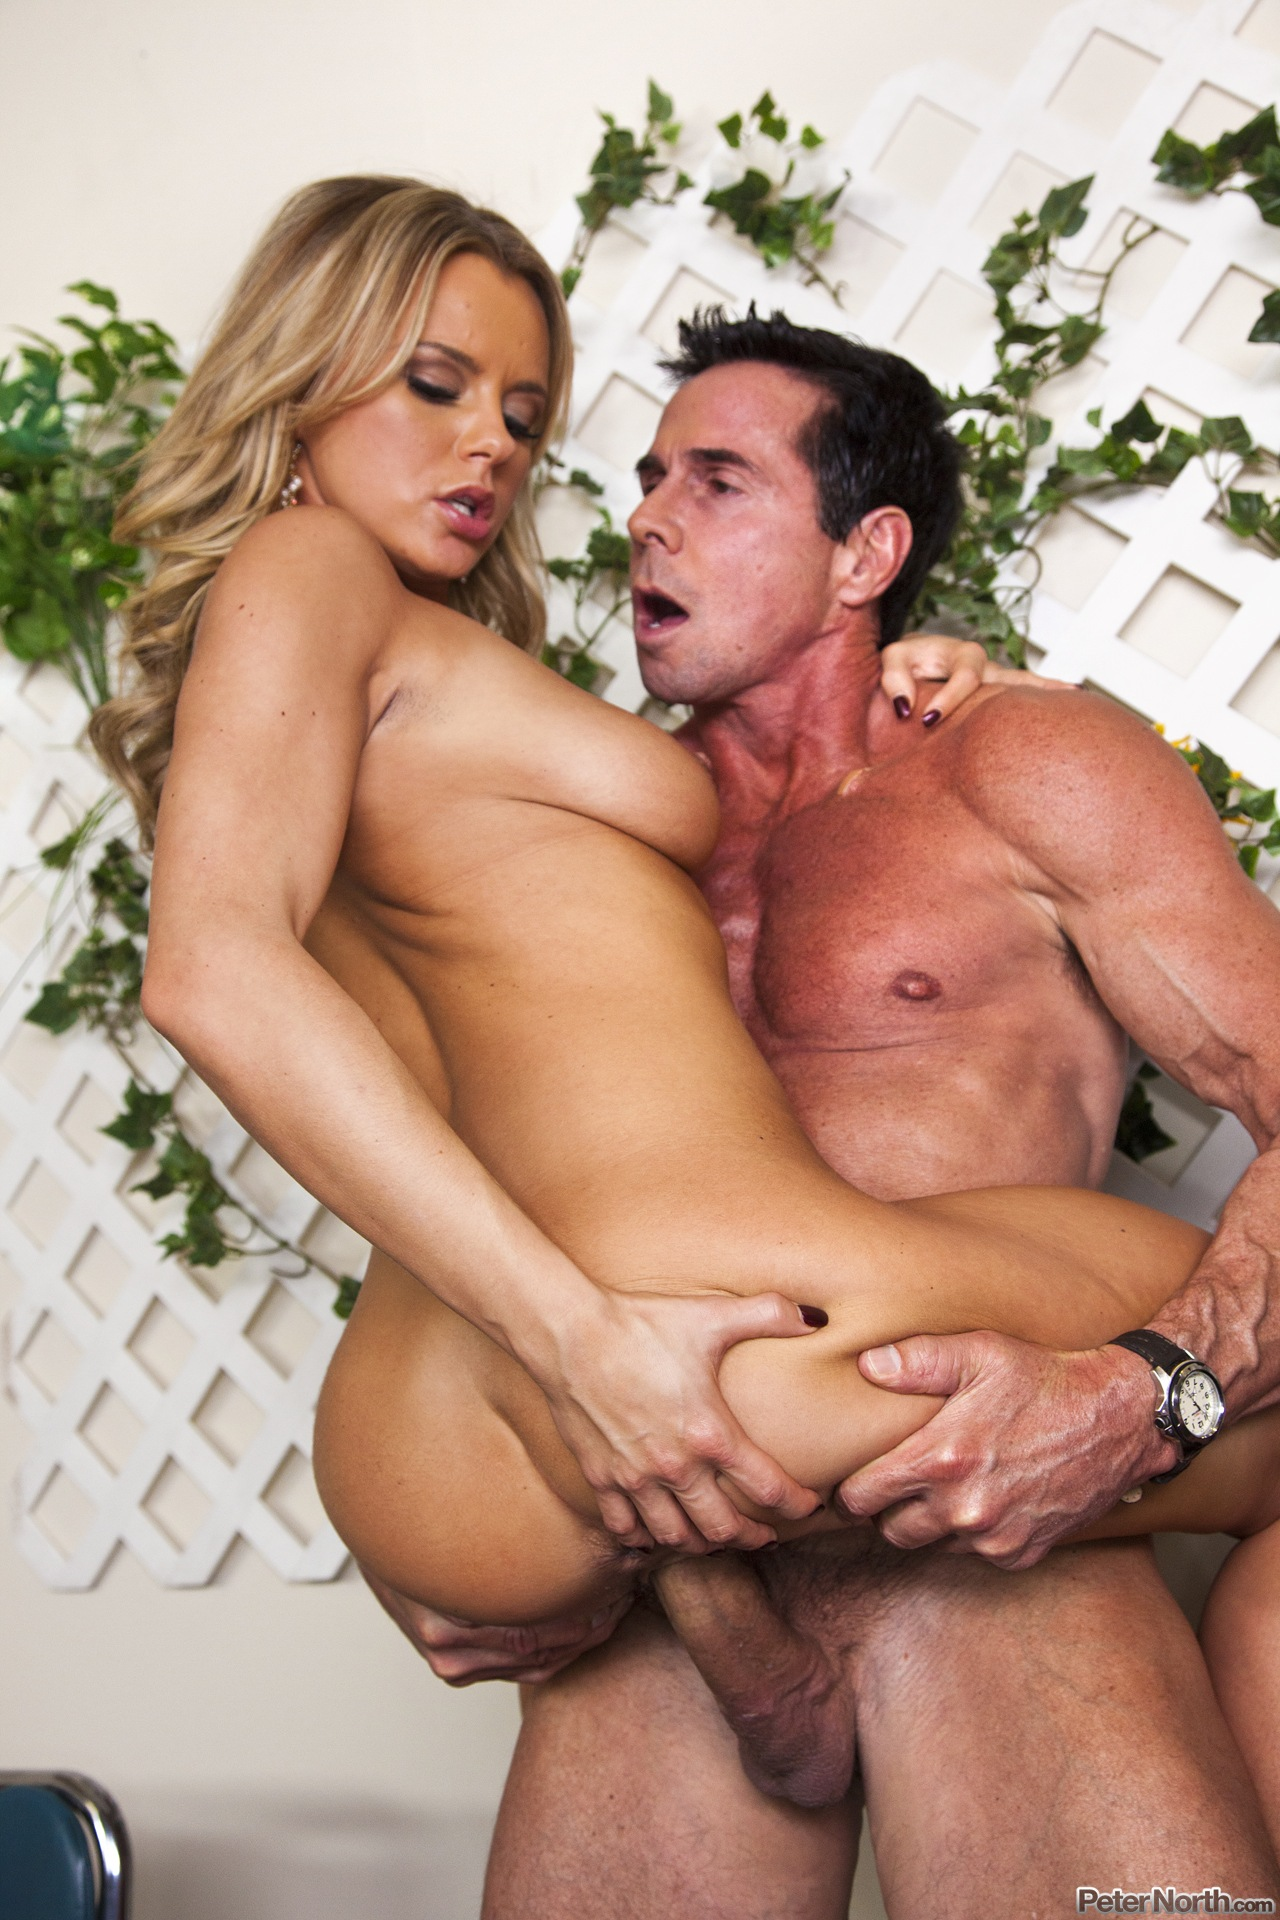 Blonde Pornstar fucked by Peter North